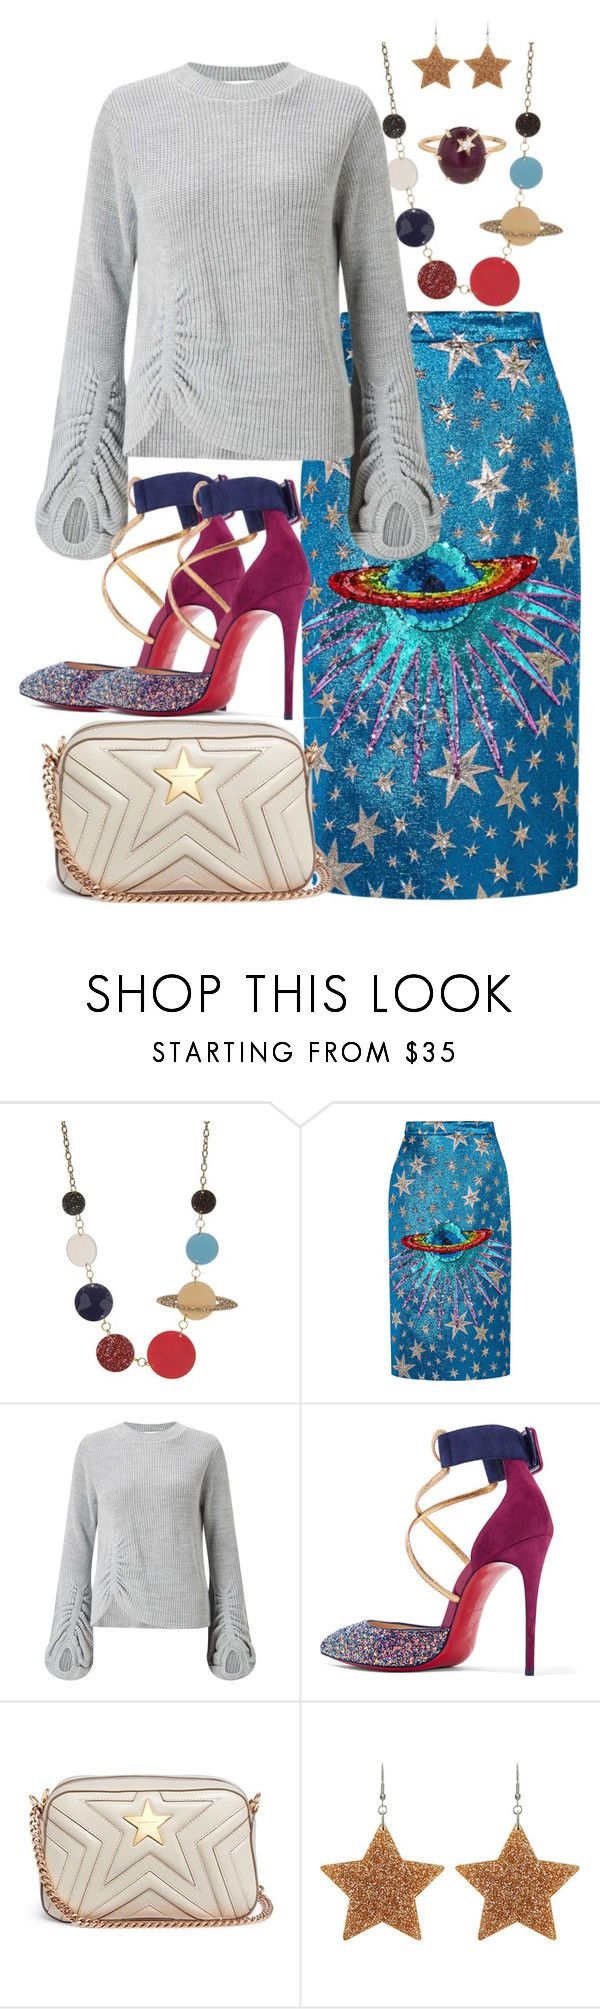 """baby you're a star"" by melannf ❤ liked on Polyvore featuring Gucci, Miss Selfridge, Christian Louboutin, STELLA McCARTNEY and Andrea Fohrman"